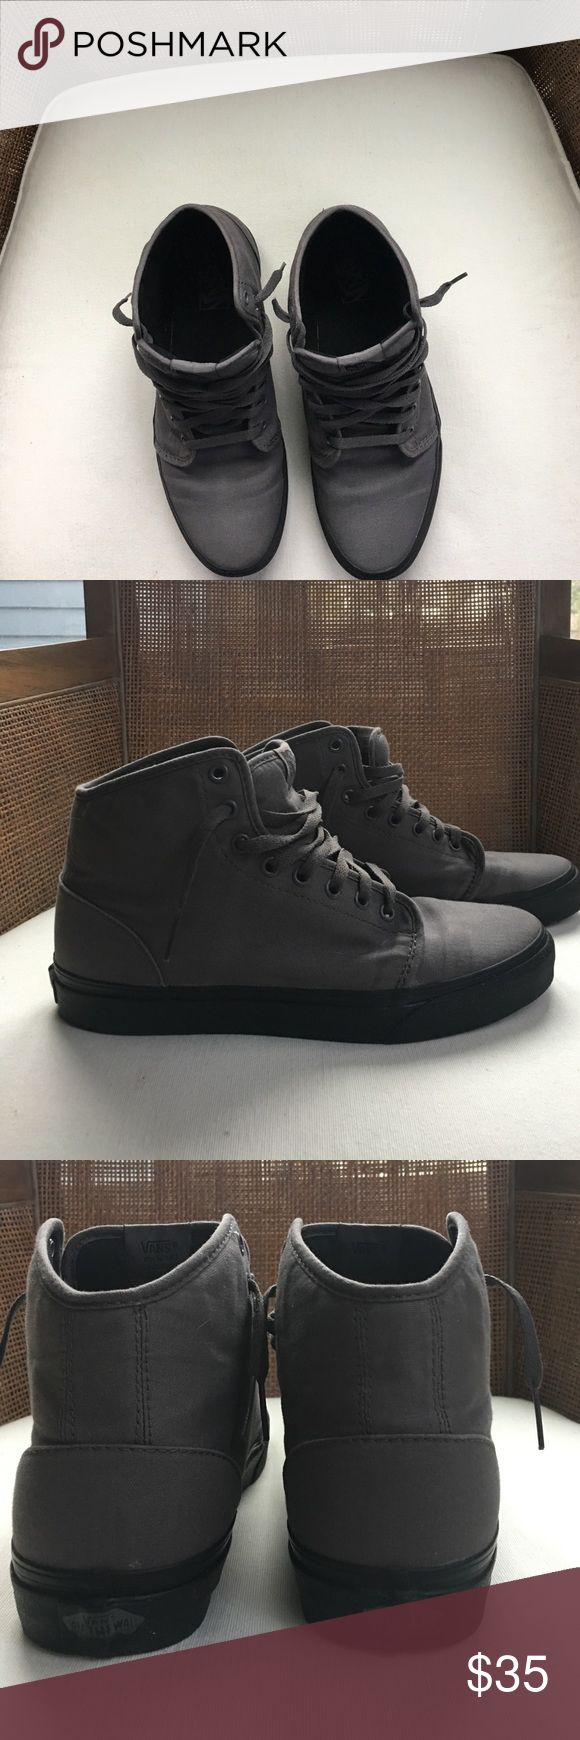 EUC Men's Vans hi top skate shoes Worn less then 5 times.  Vans are the number 1 skate shoe in the world and super comfortable. These high tops are dark grey canvas uppers with black out soles. Size 9.5 men's and 11 in women's Vans Shoes Sneakers